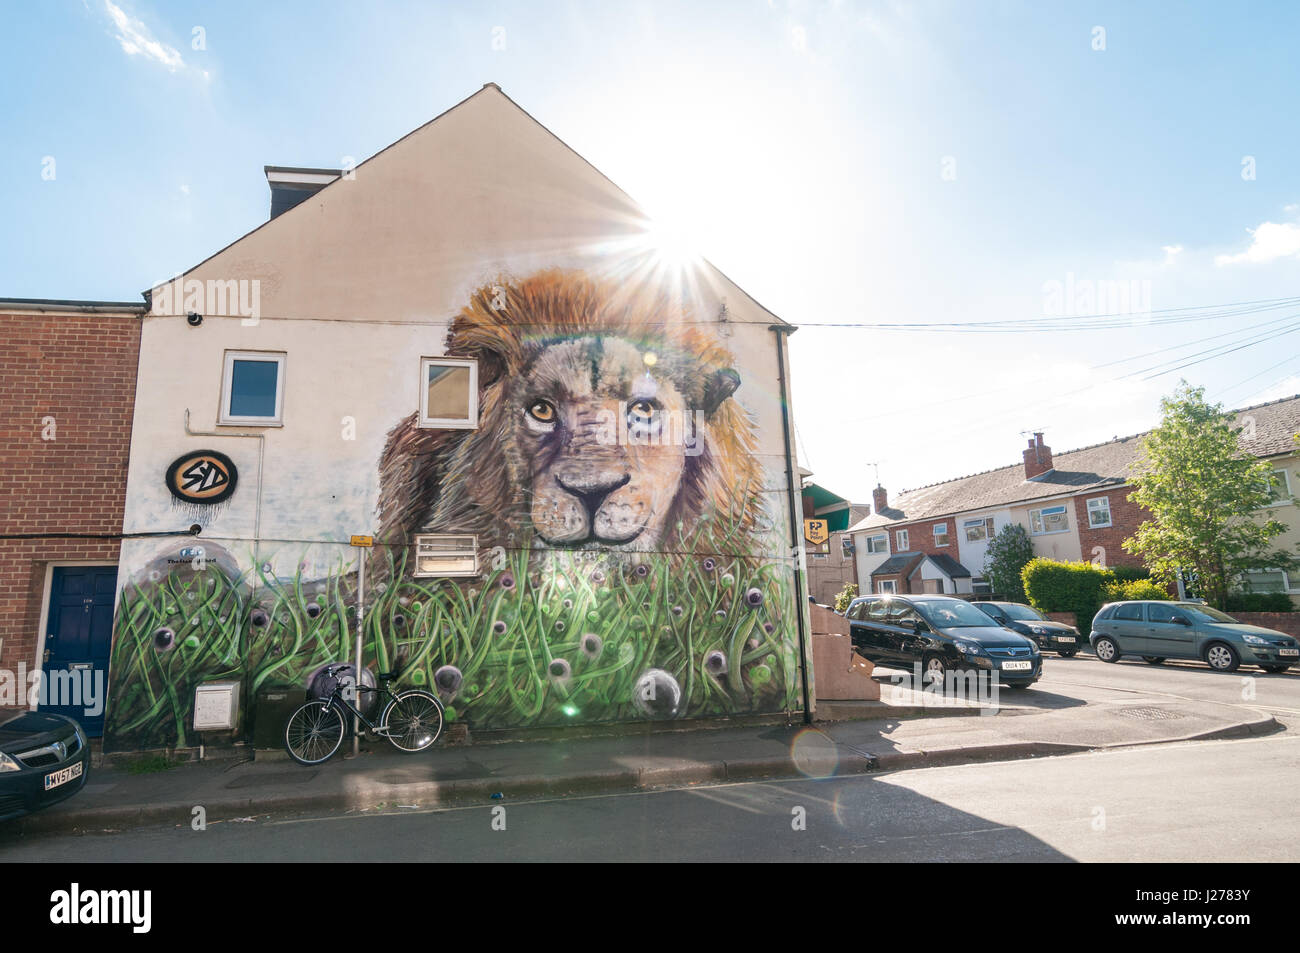 lion-murial-on-wall-in-east-oxford-united-kingdom-J2783Y.jpg